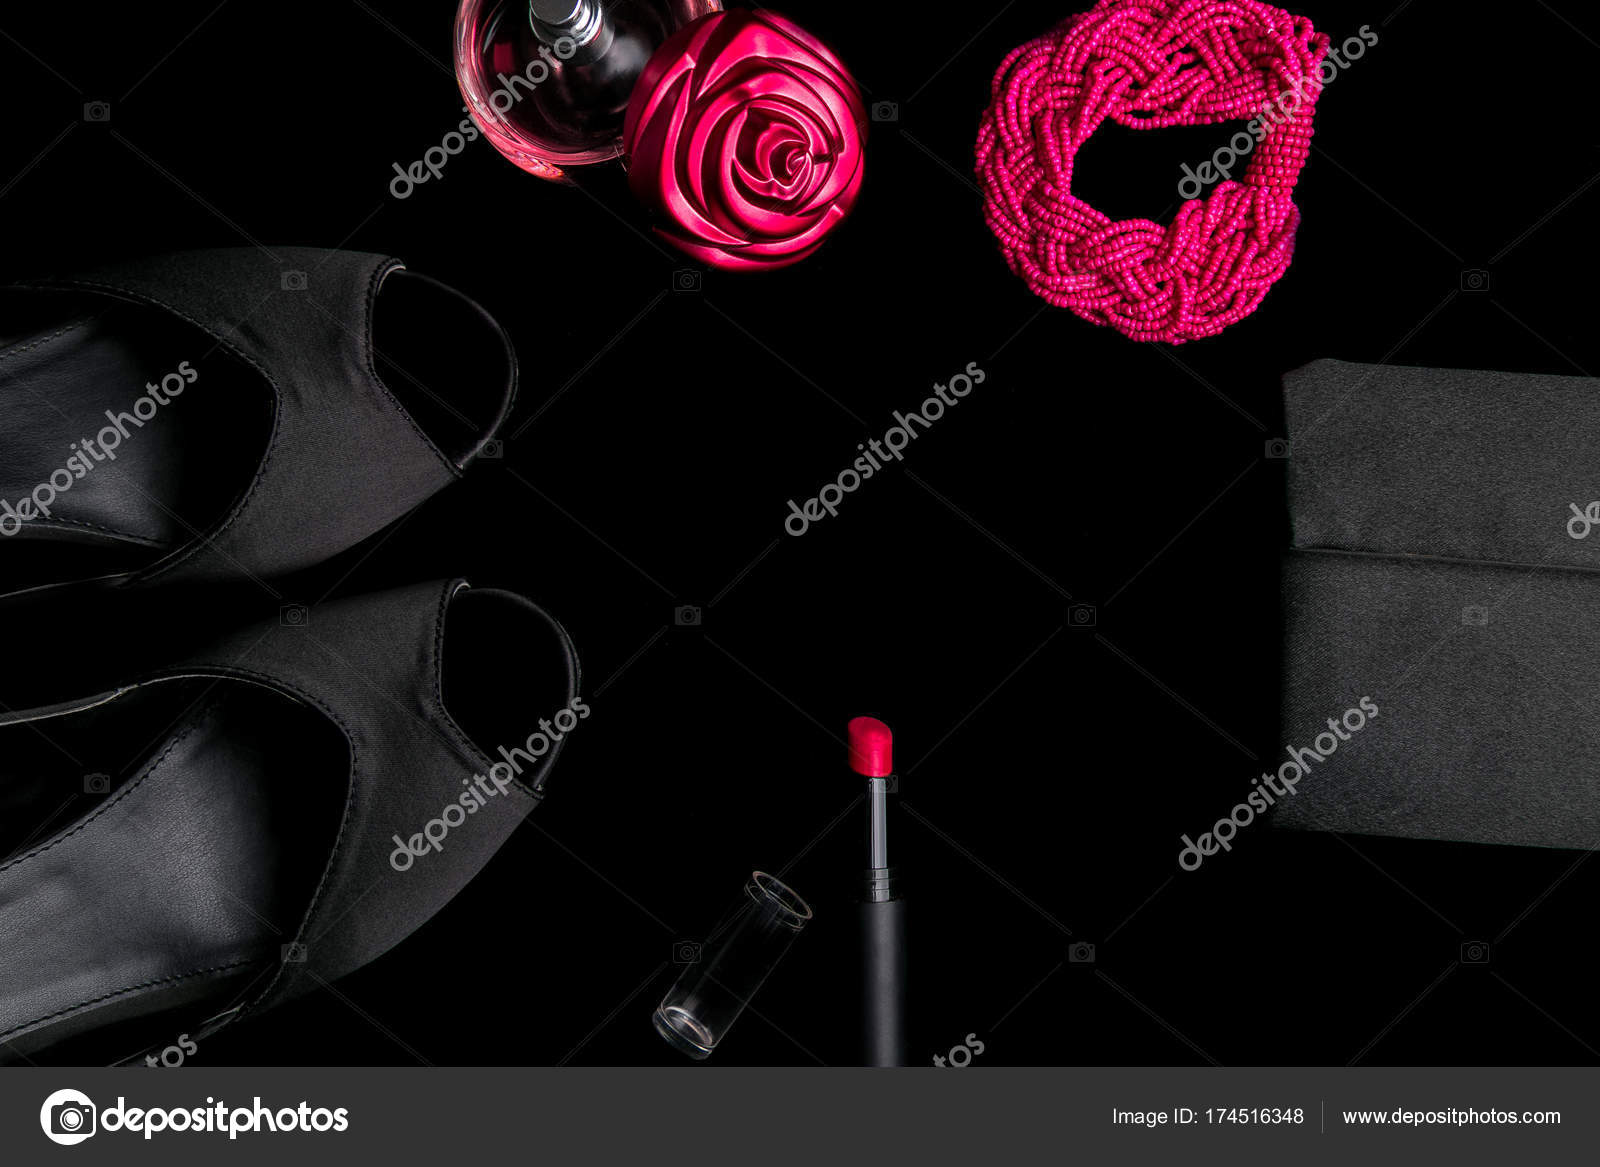 Fashion Lady Accessories Set Black And Pink Minimal Shoes